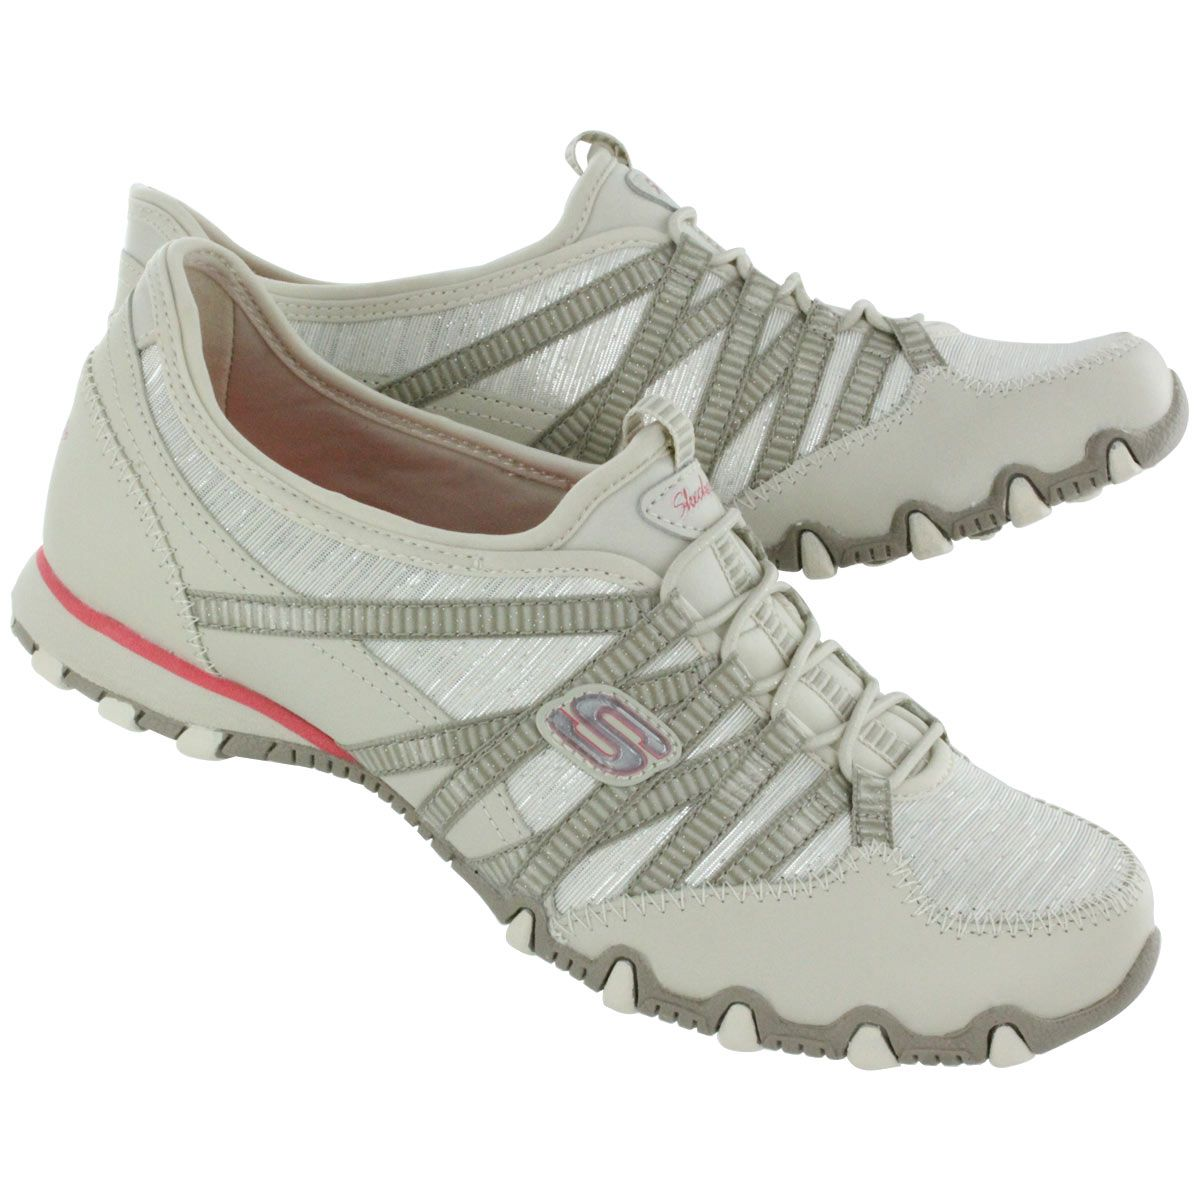 the best attitude 12cc9 5b637 Skechers Women s Bikers SPARKLING natural bungee shoes 22353 NTSL